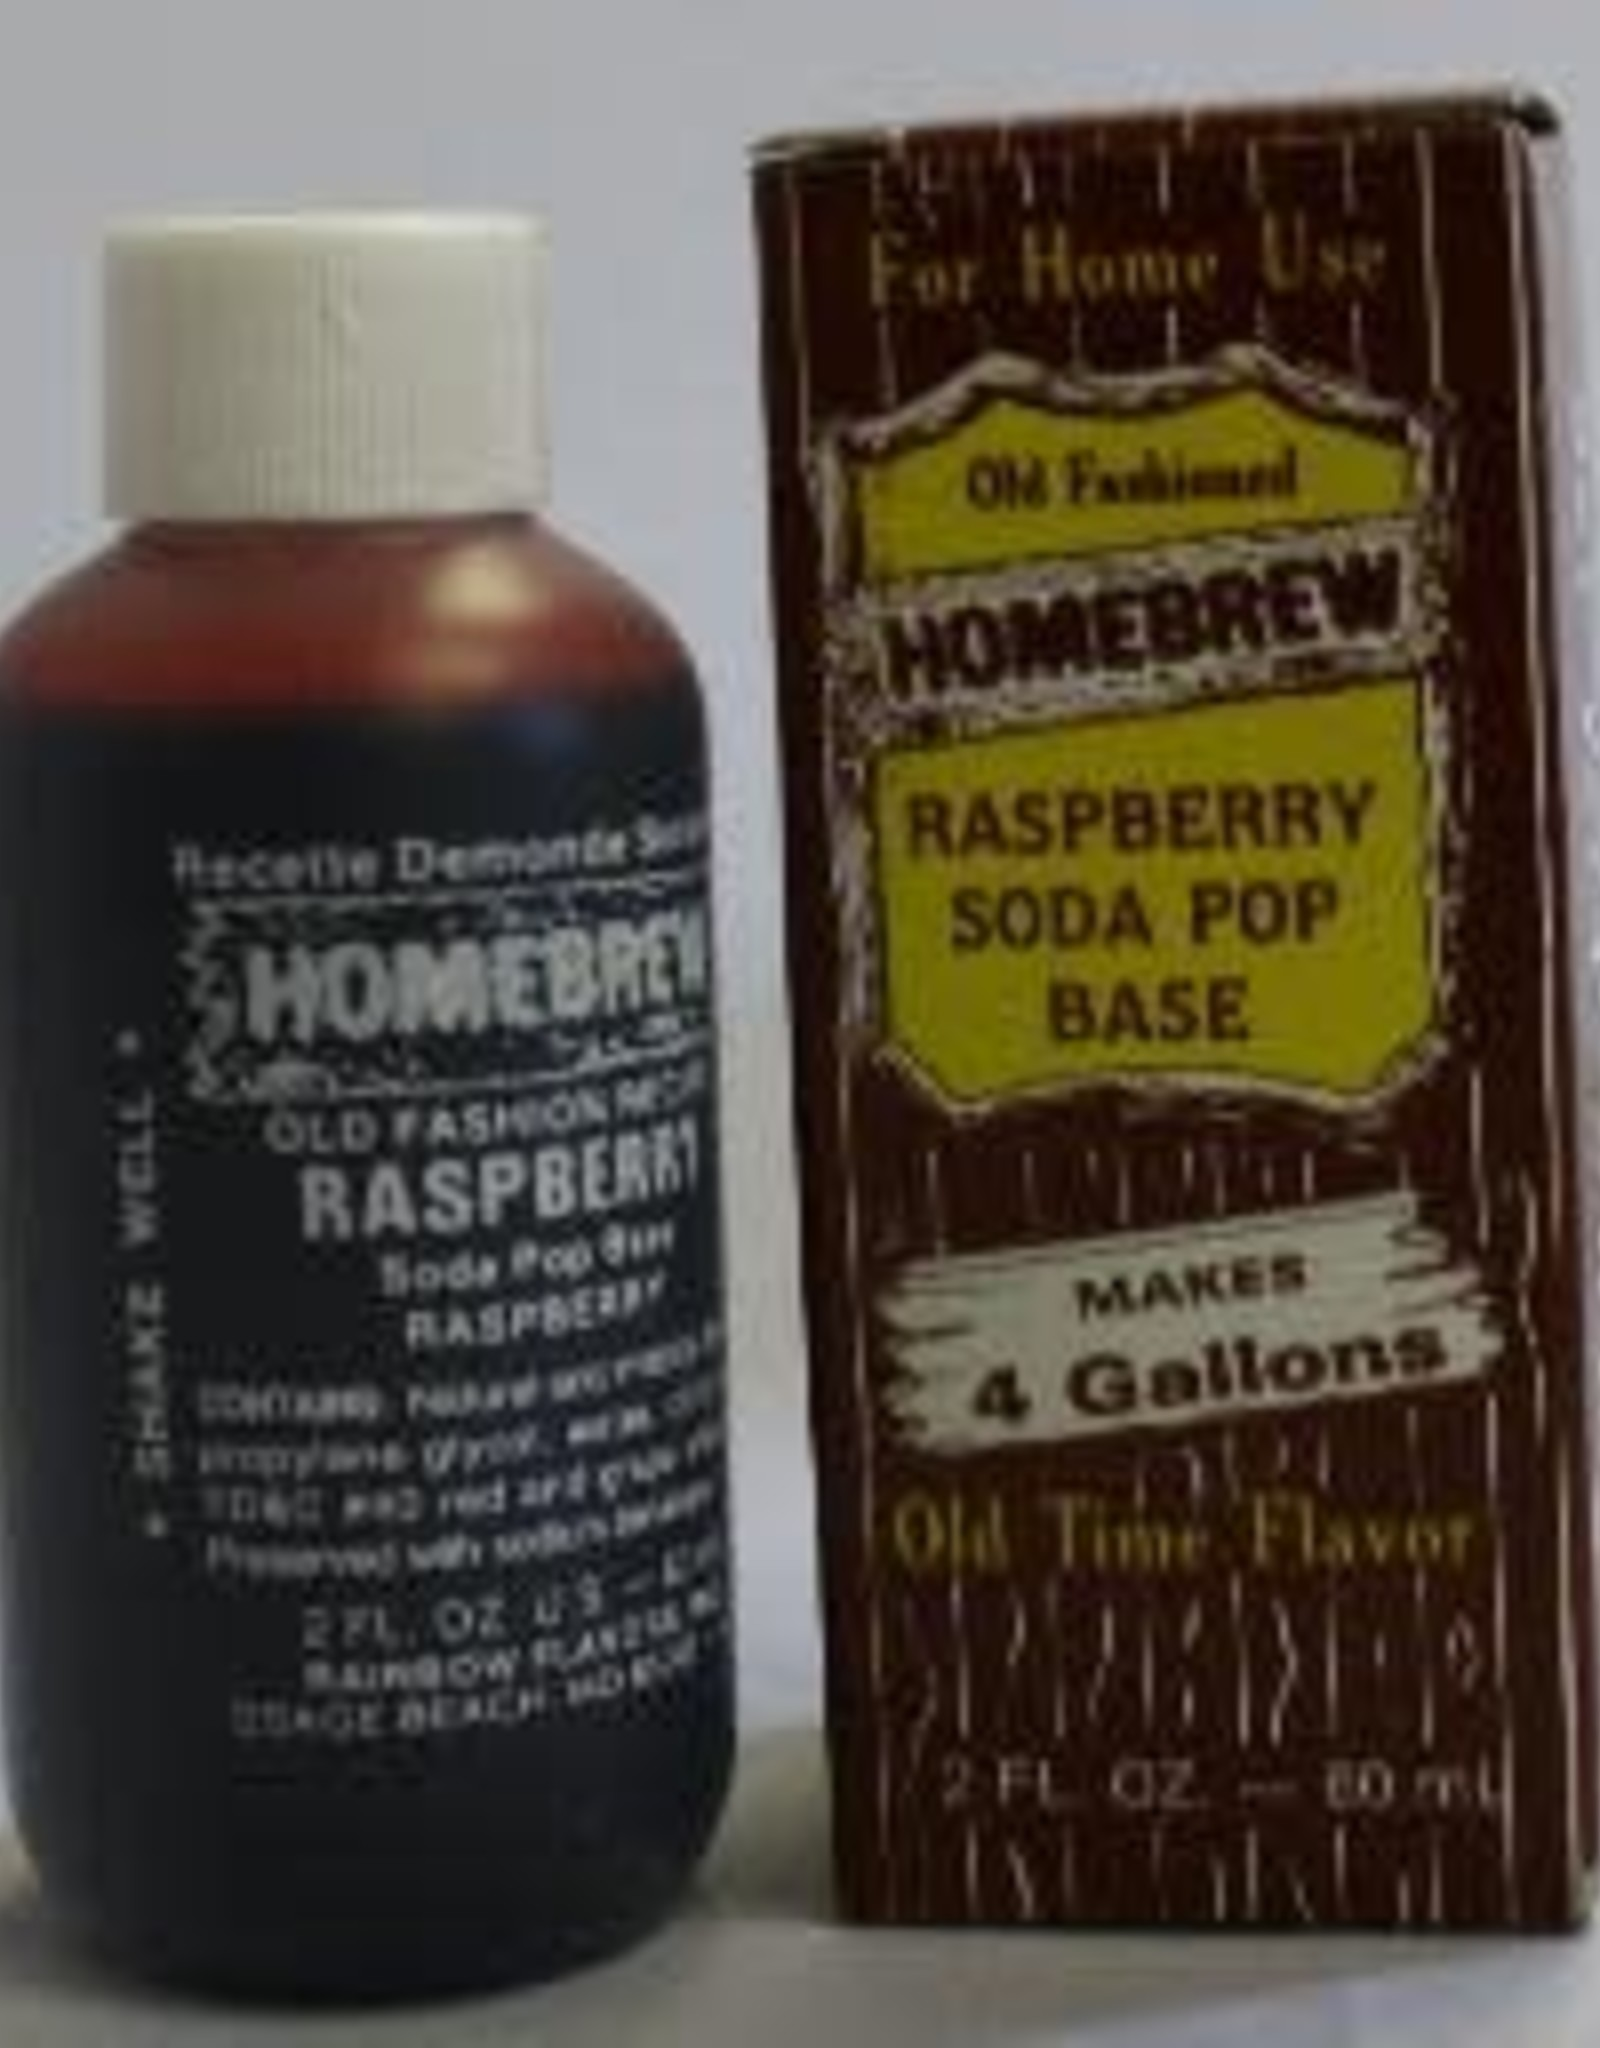 RASPBERRY SODA EXTRACT